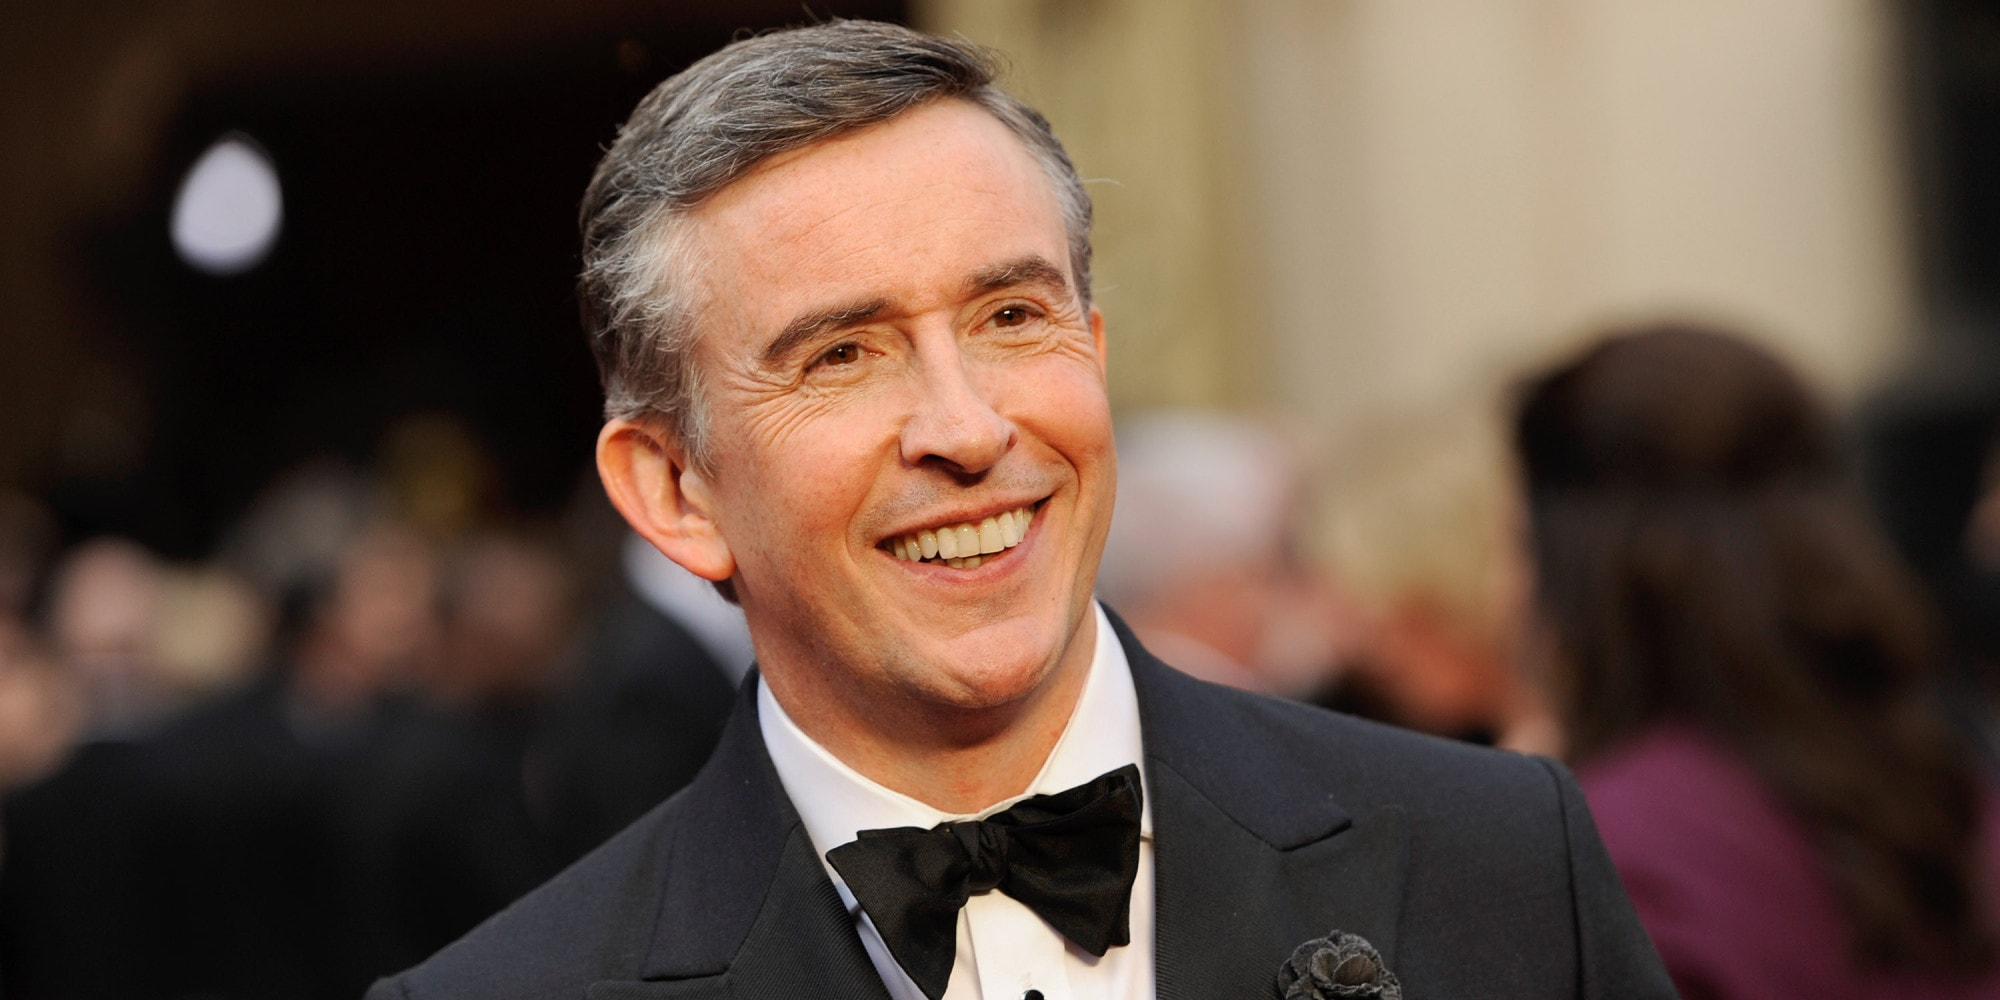 Steve Coogan Wallpapers hd